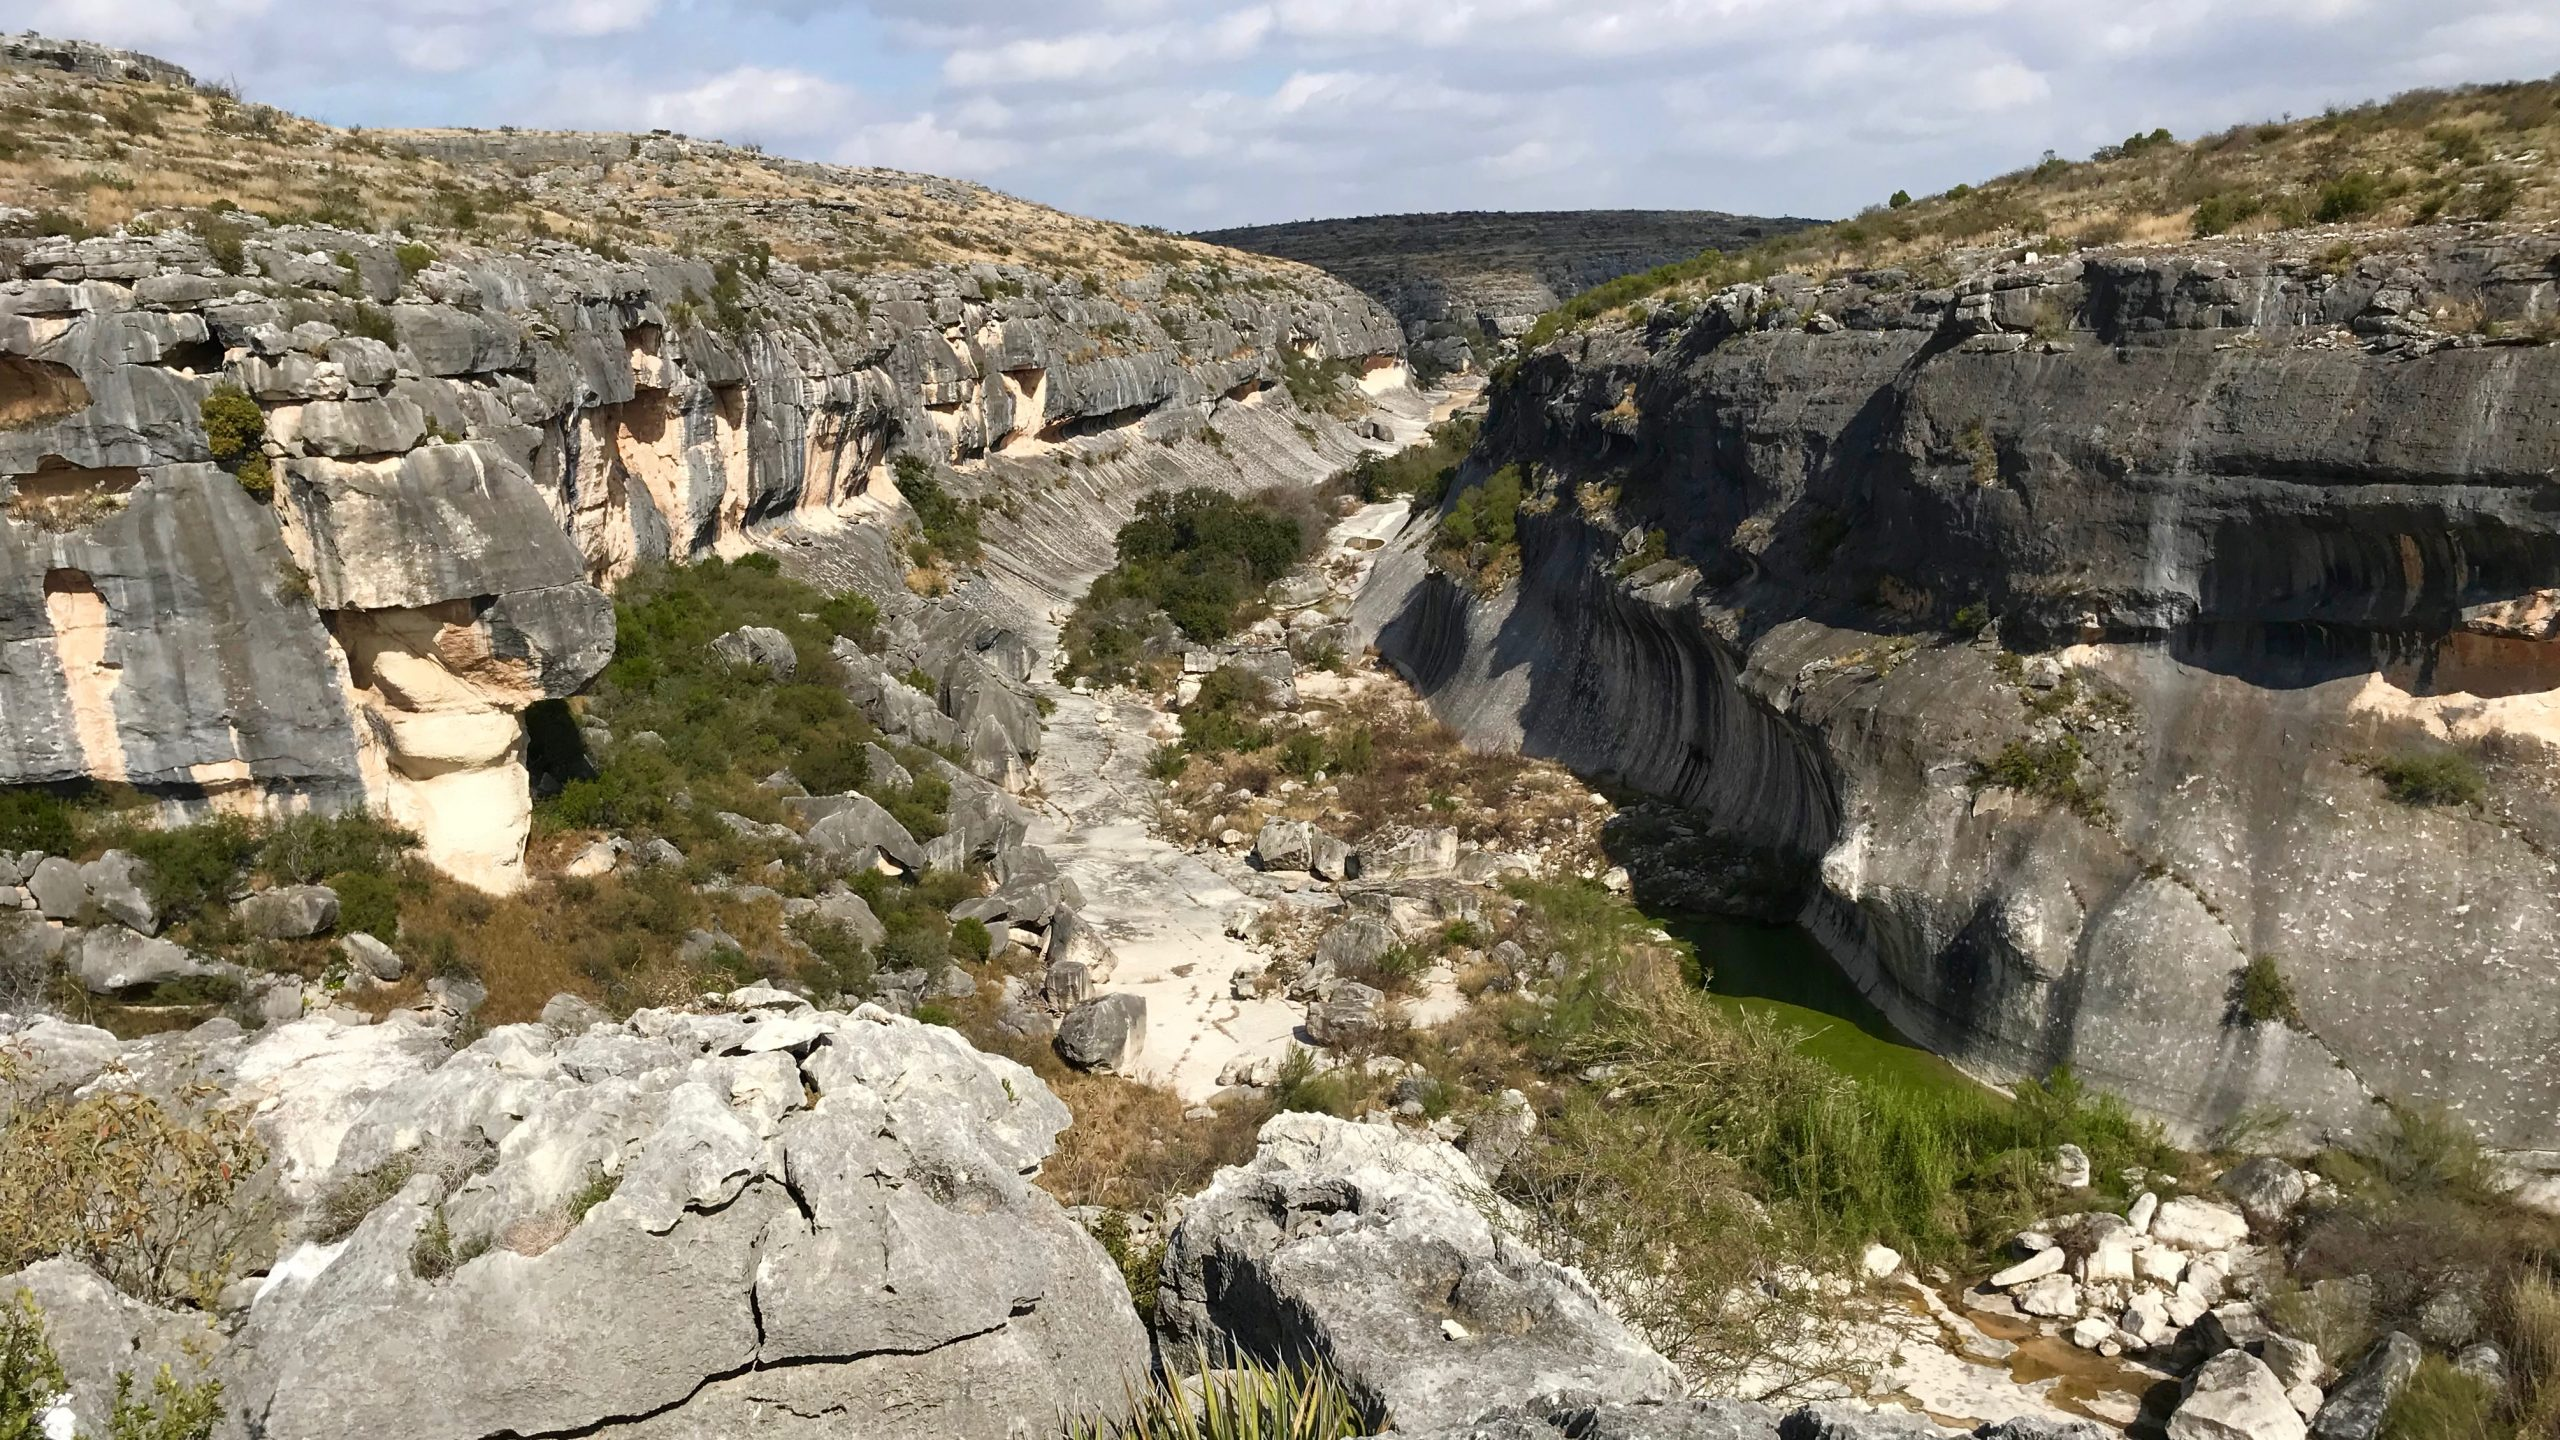 A view from the rim of Seminole Canyon shows the steep limestone sides carved through eons of erosion. Pools of water and green shrubs dot the floor of the canyon.